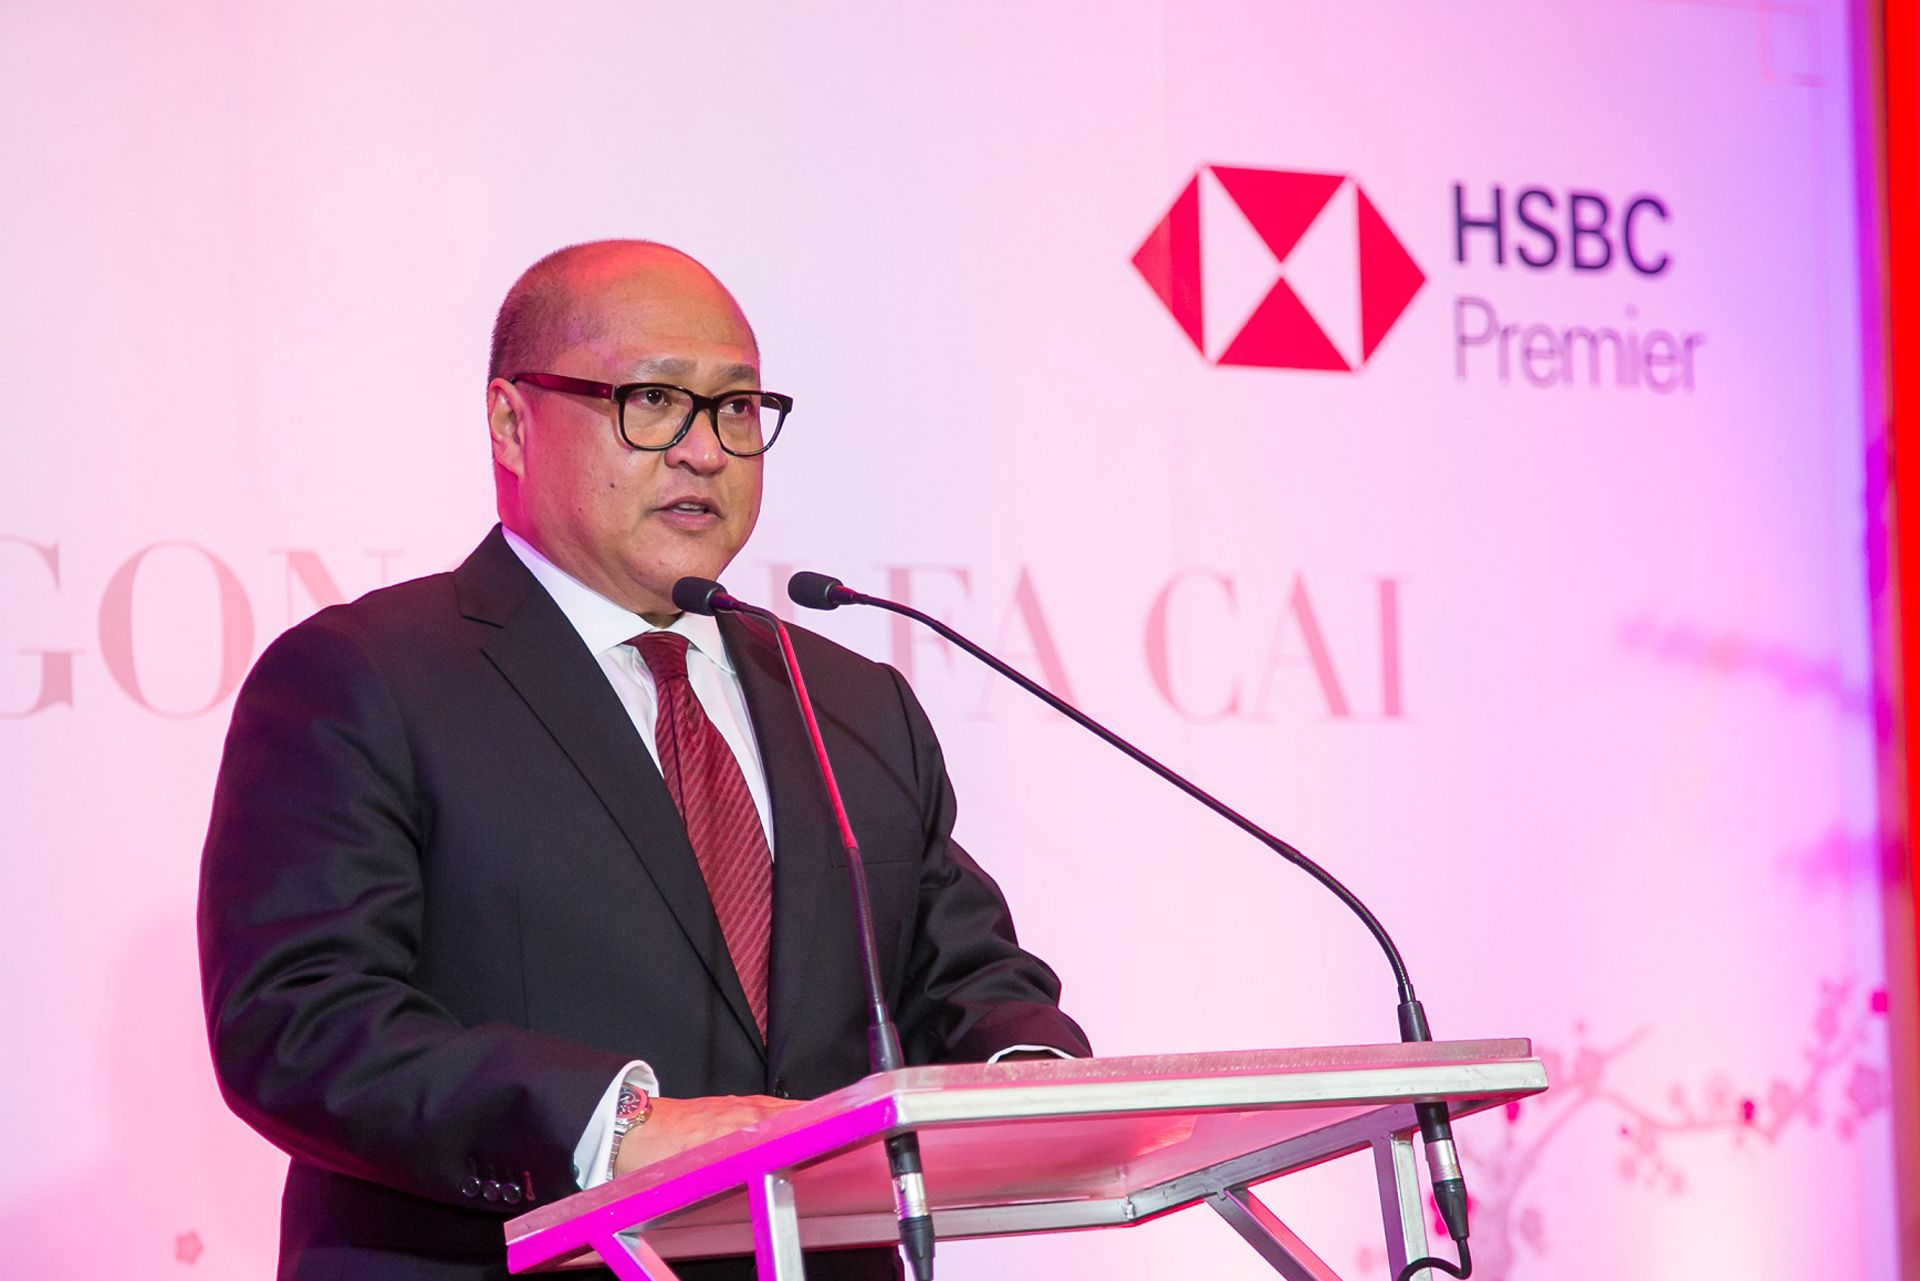 A Prosperous New Year With HSBC